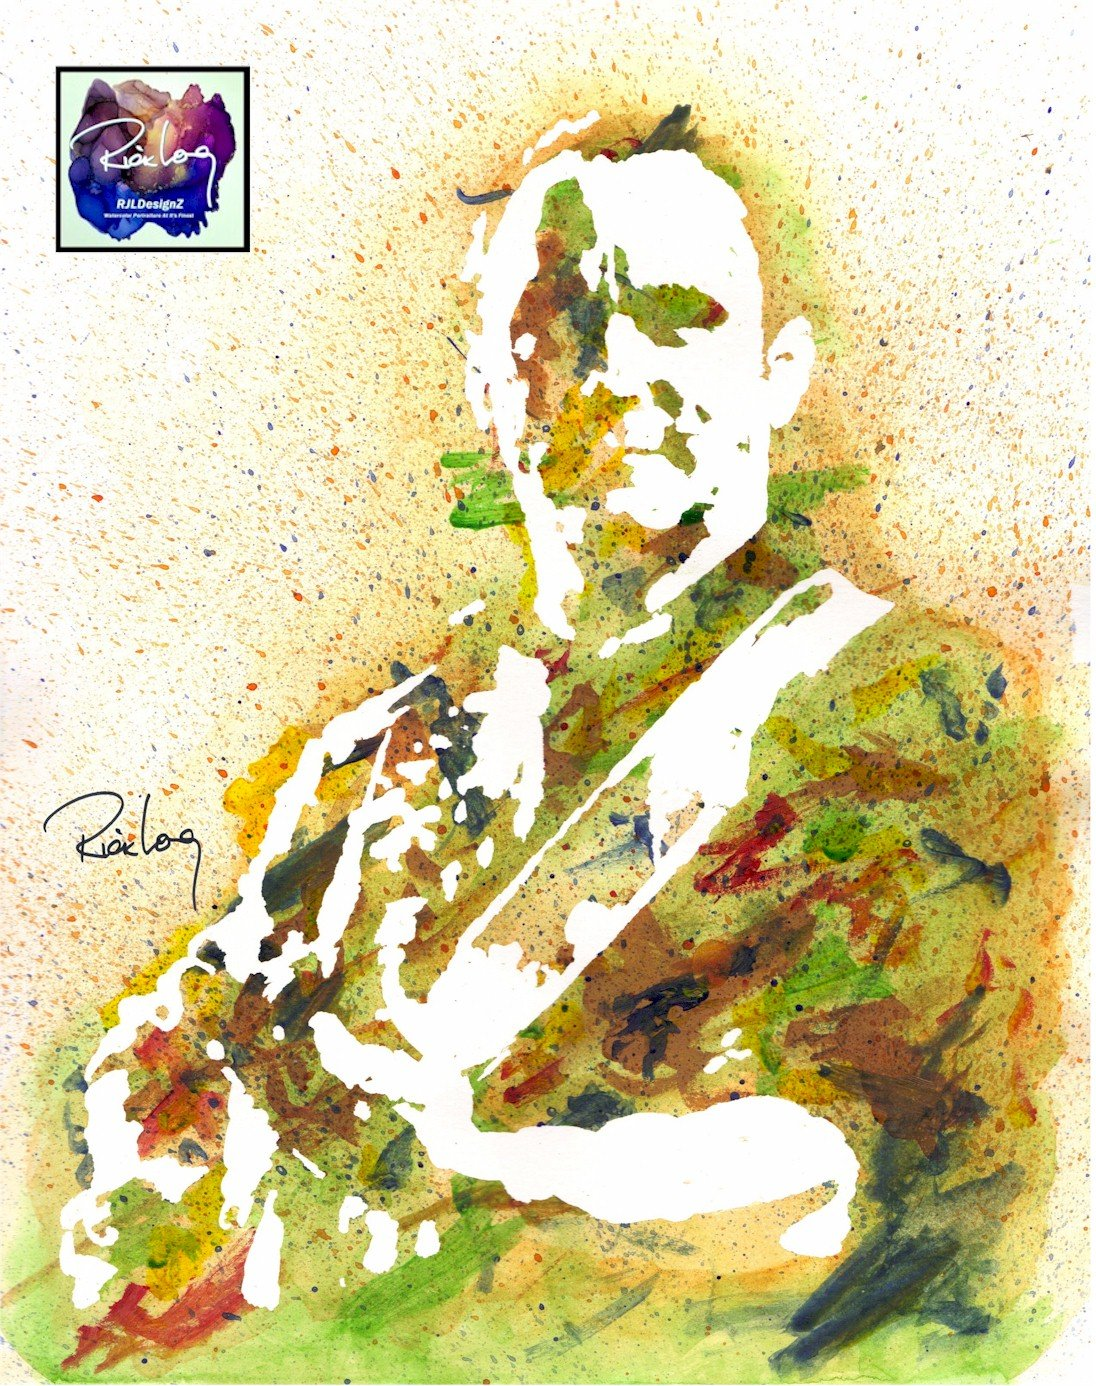 HAND DRAWN Original Artist 8 x 10 Watercolor PRINT Tripping Billies featuring DAVE MATTHEWS. UNFRAMED LIMITED EDITION Available in 8X10 and 20×30 Prints